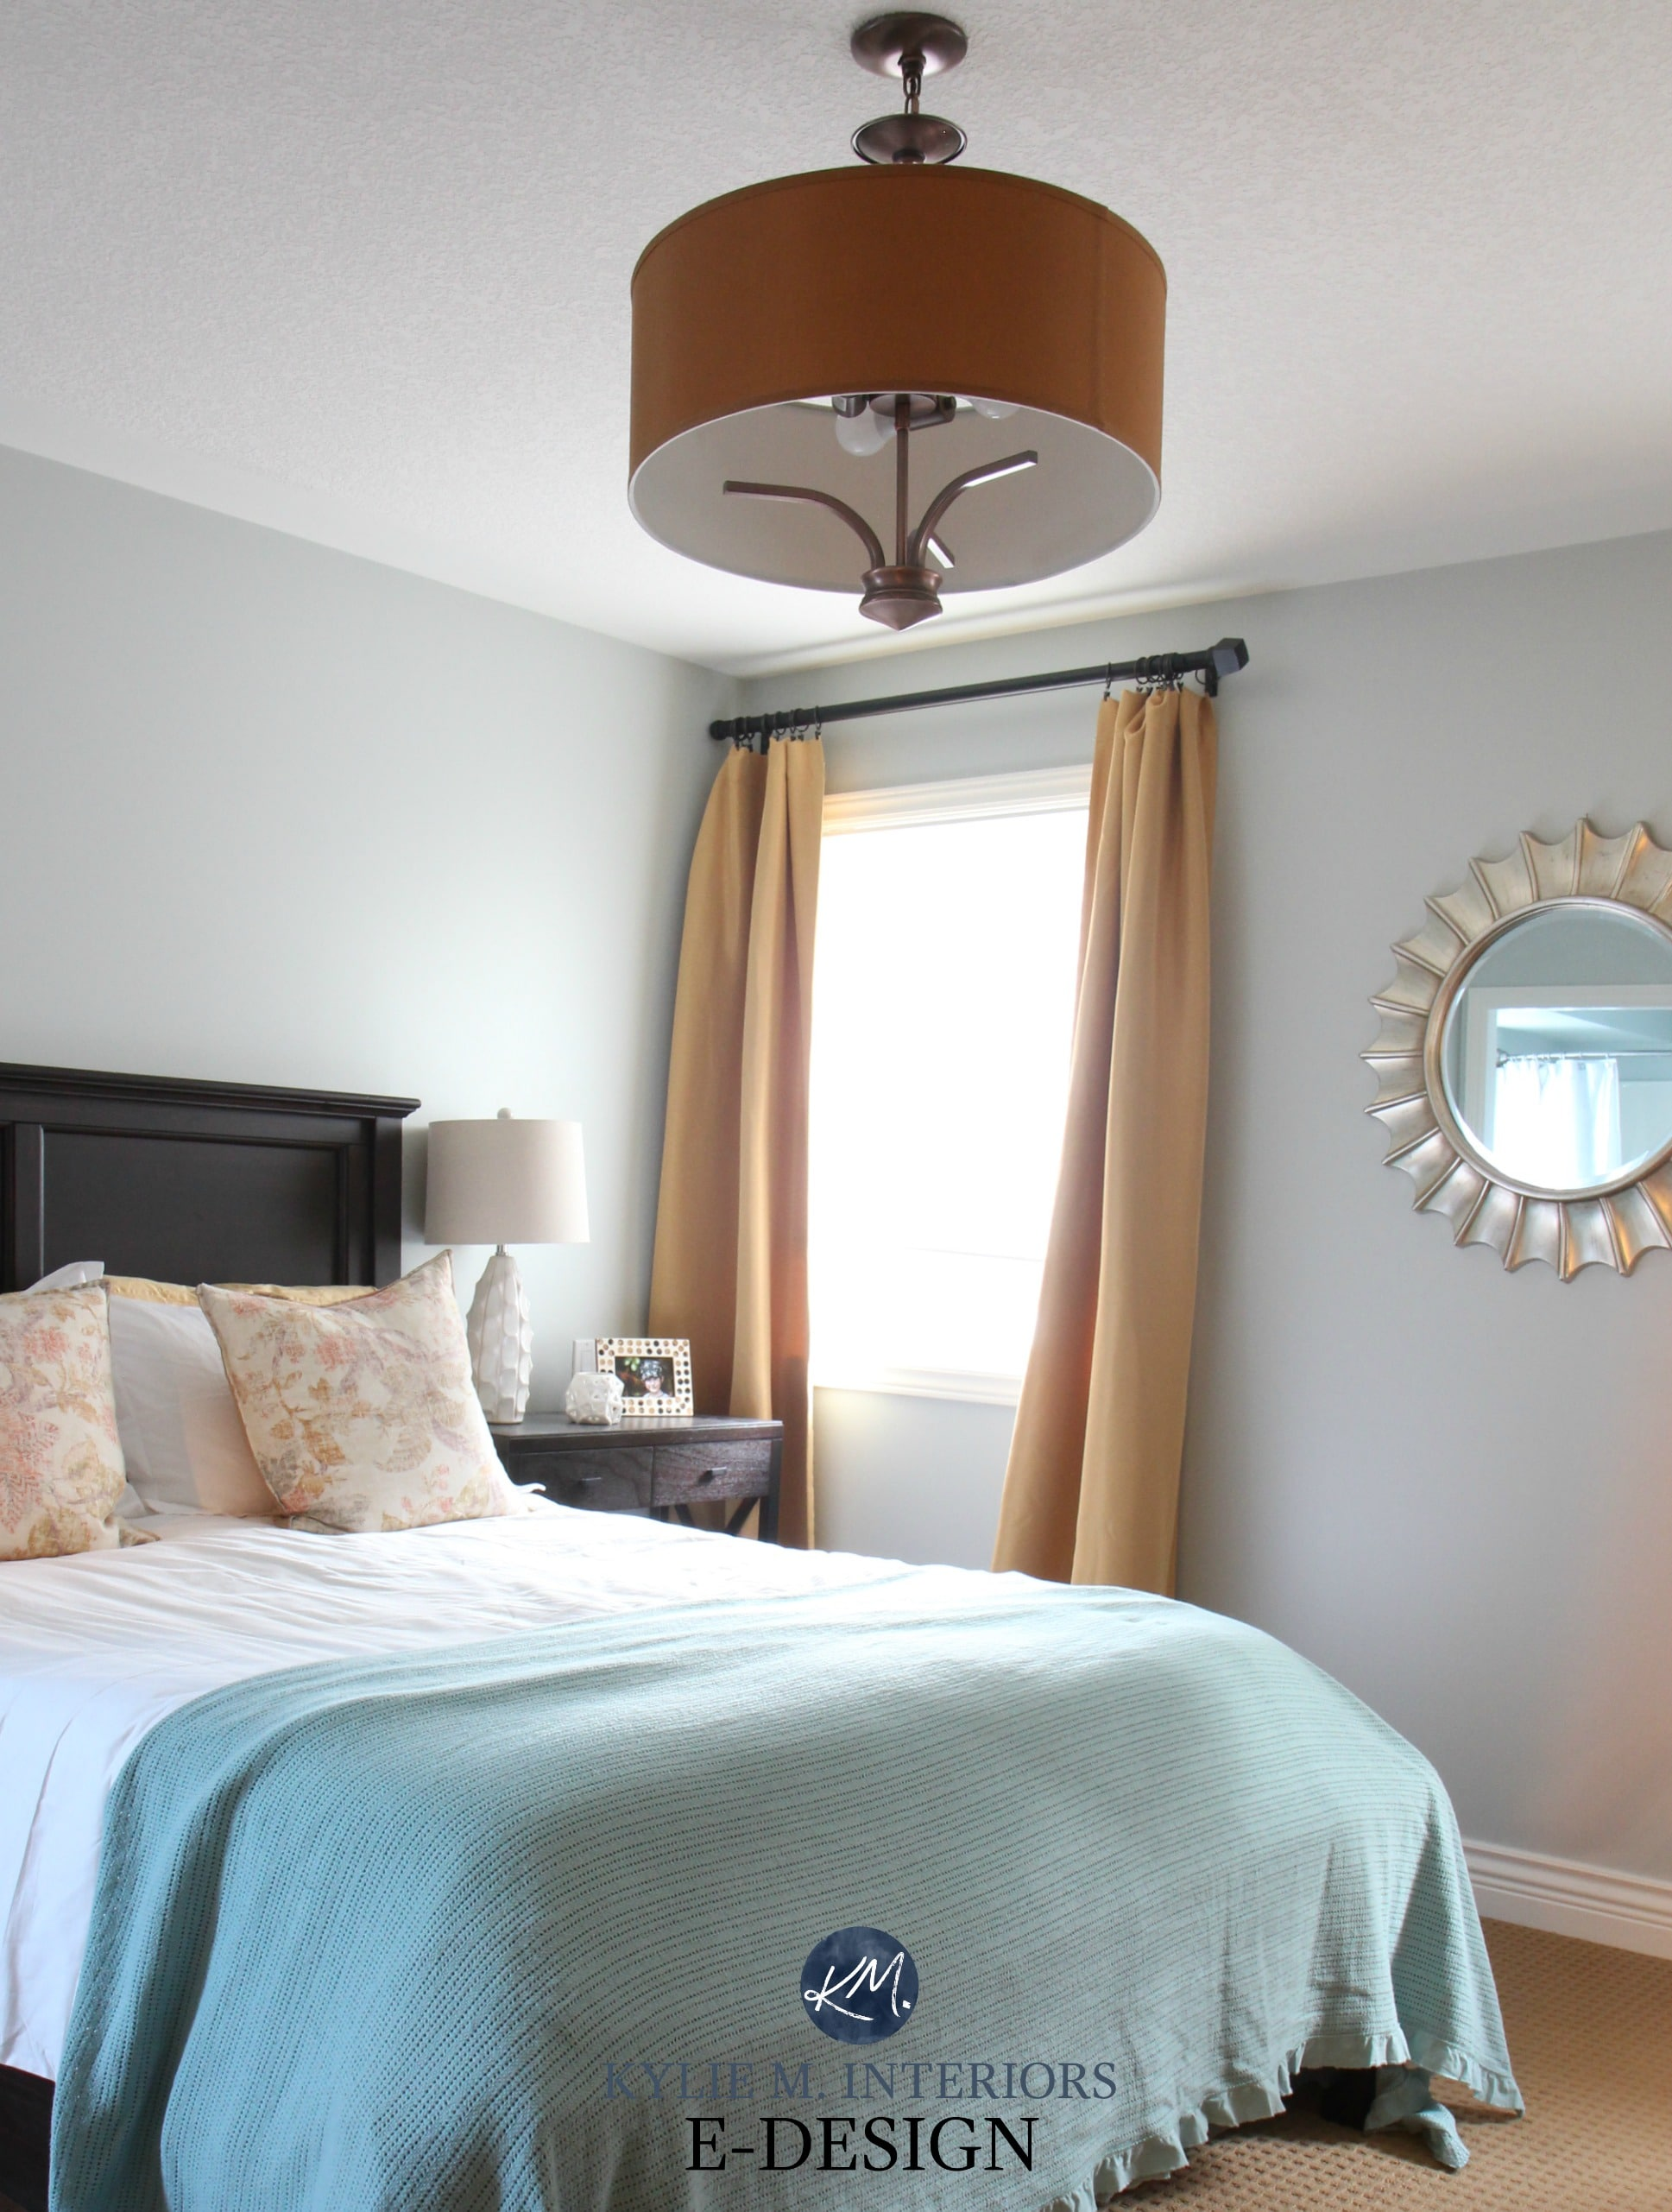 Sherwin Williams Silver Strand Paint Color Review South Facing Bedroom Blue Green Gold Accents Kylie M Interiors E Design Online Expert